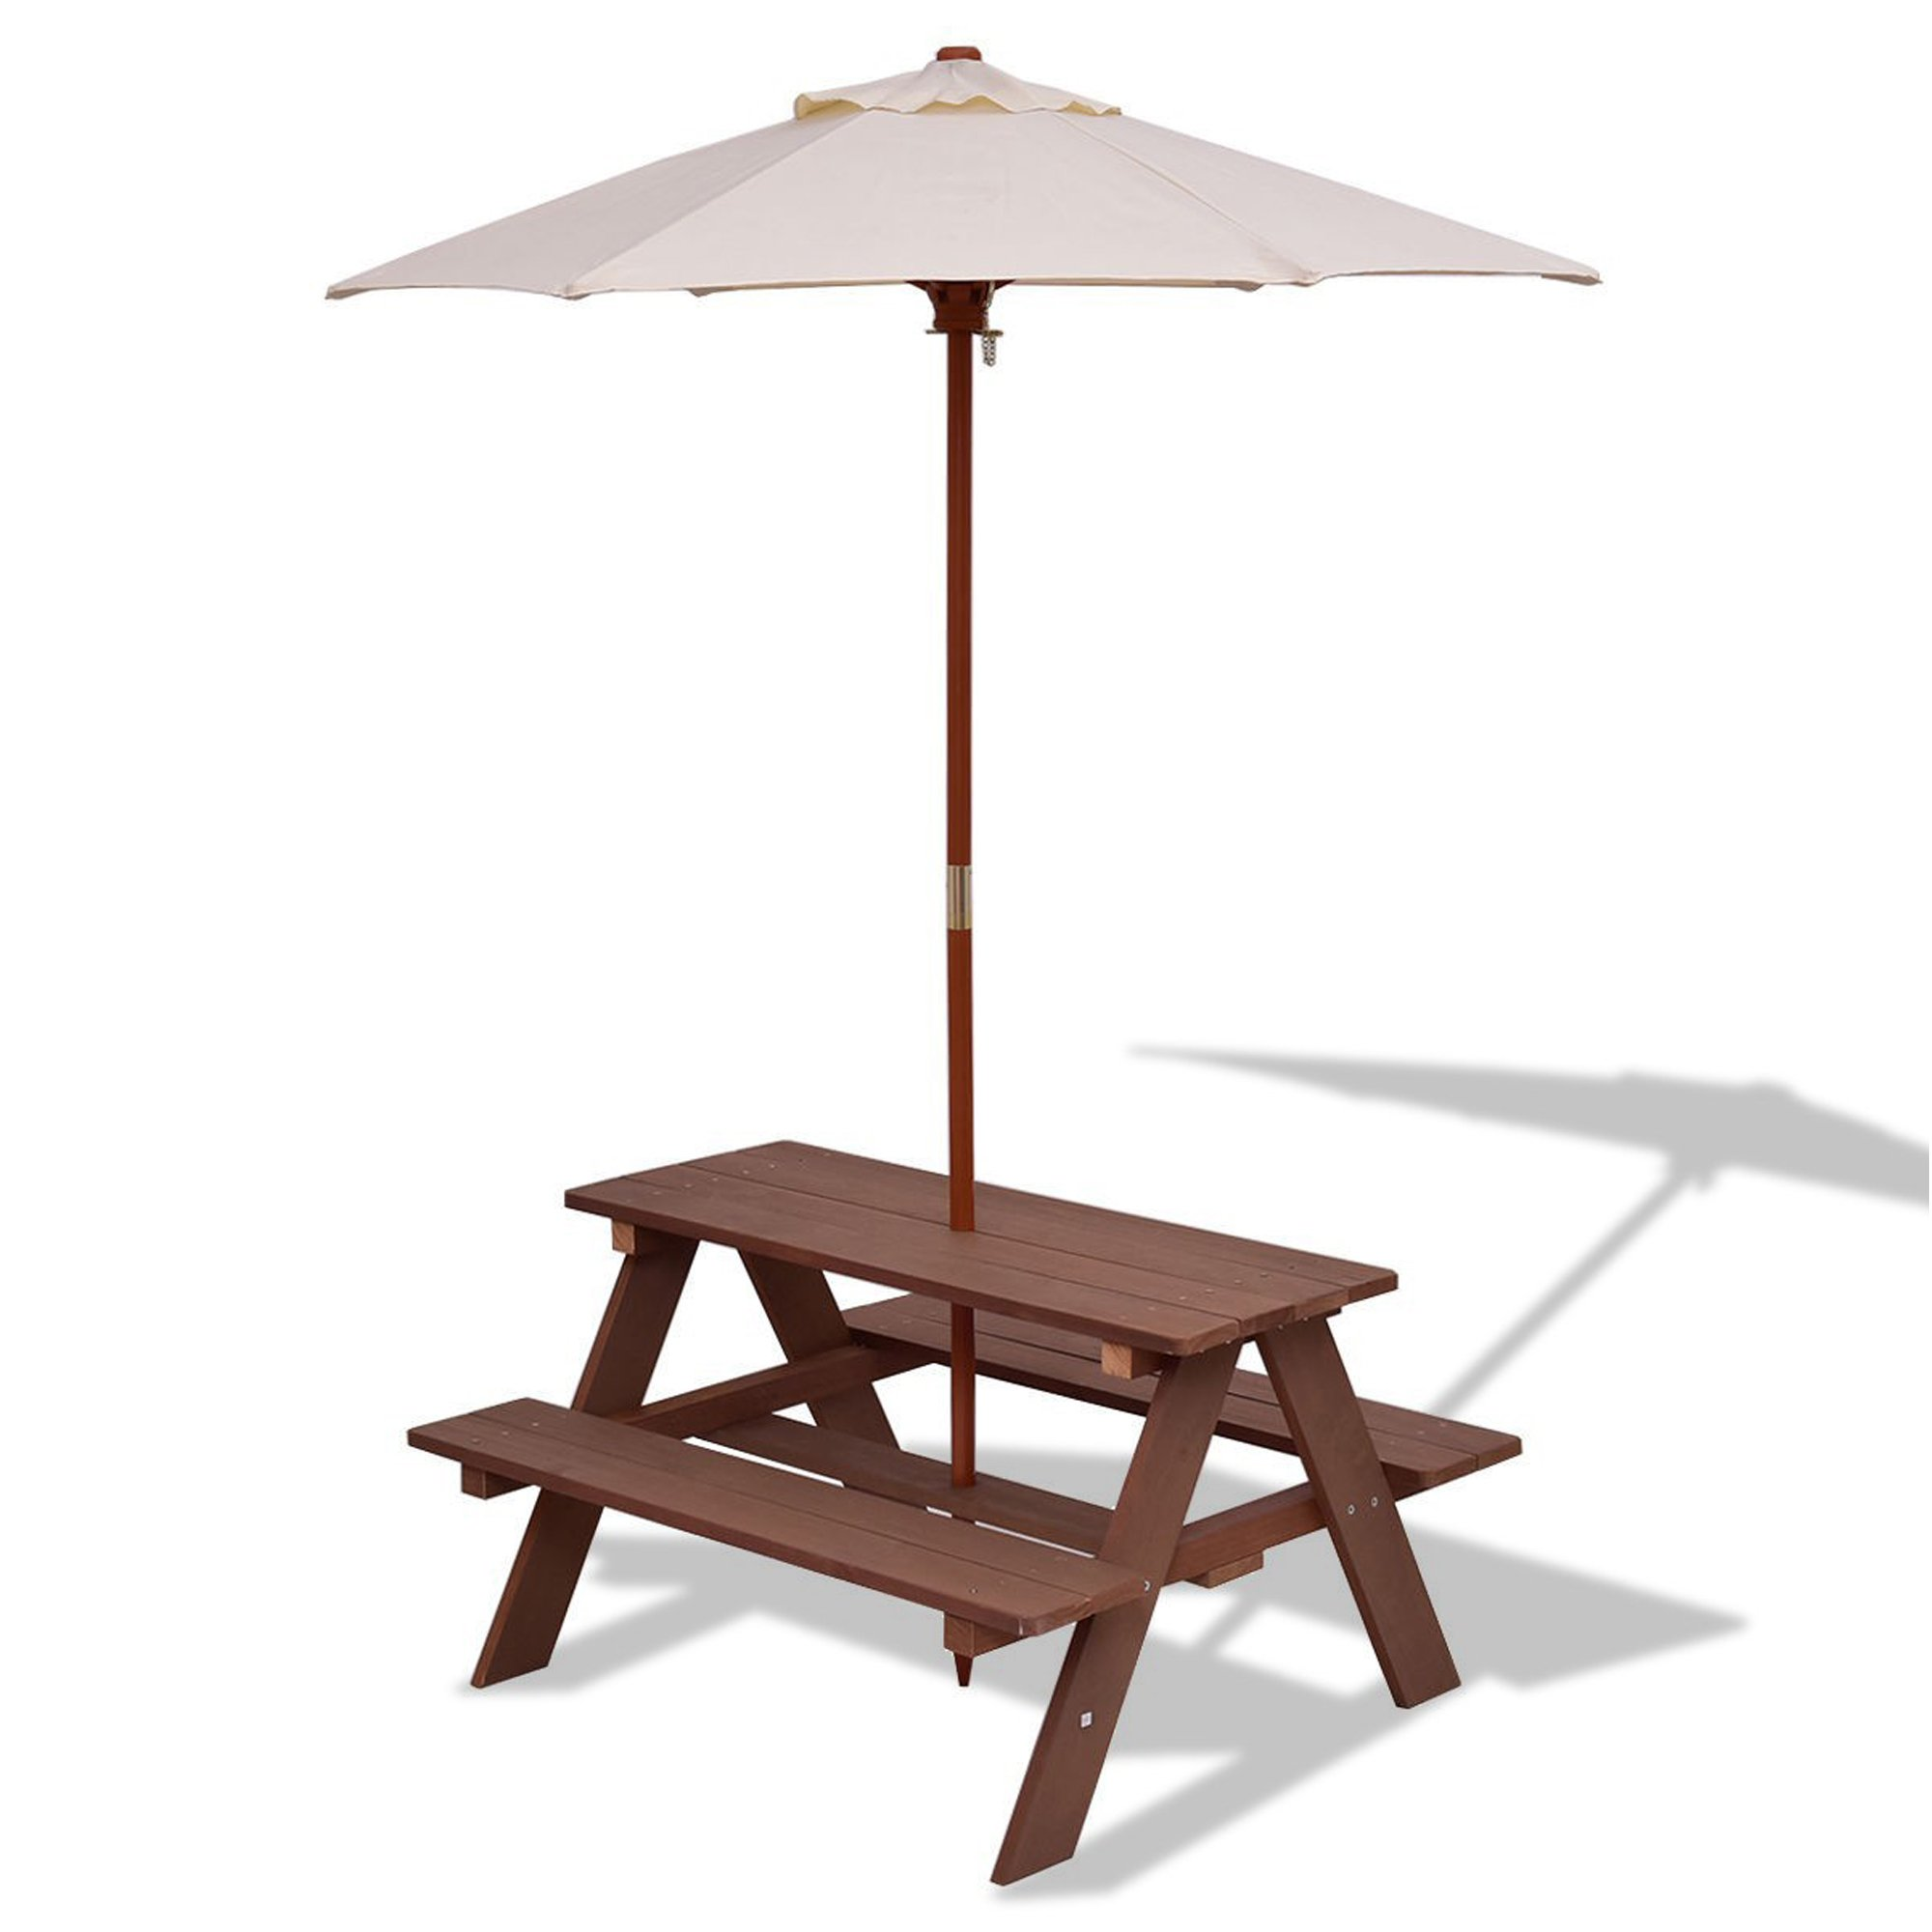 DUSTNIE Kids Picnic Table W/Umbrella - Outdoor Wood Patio Furniture Children Toddler Toys Benches Chairs Patio Garden Backyard Front Porch Pool